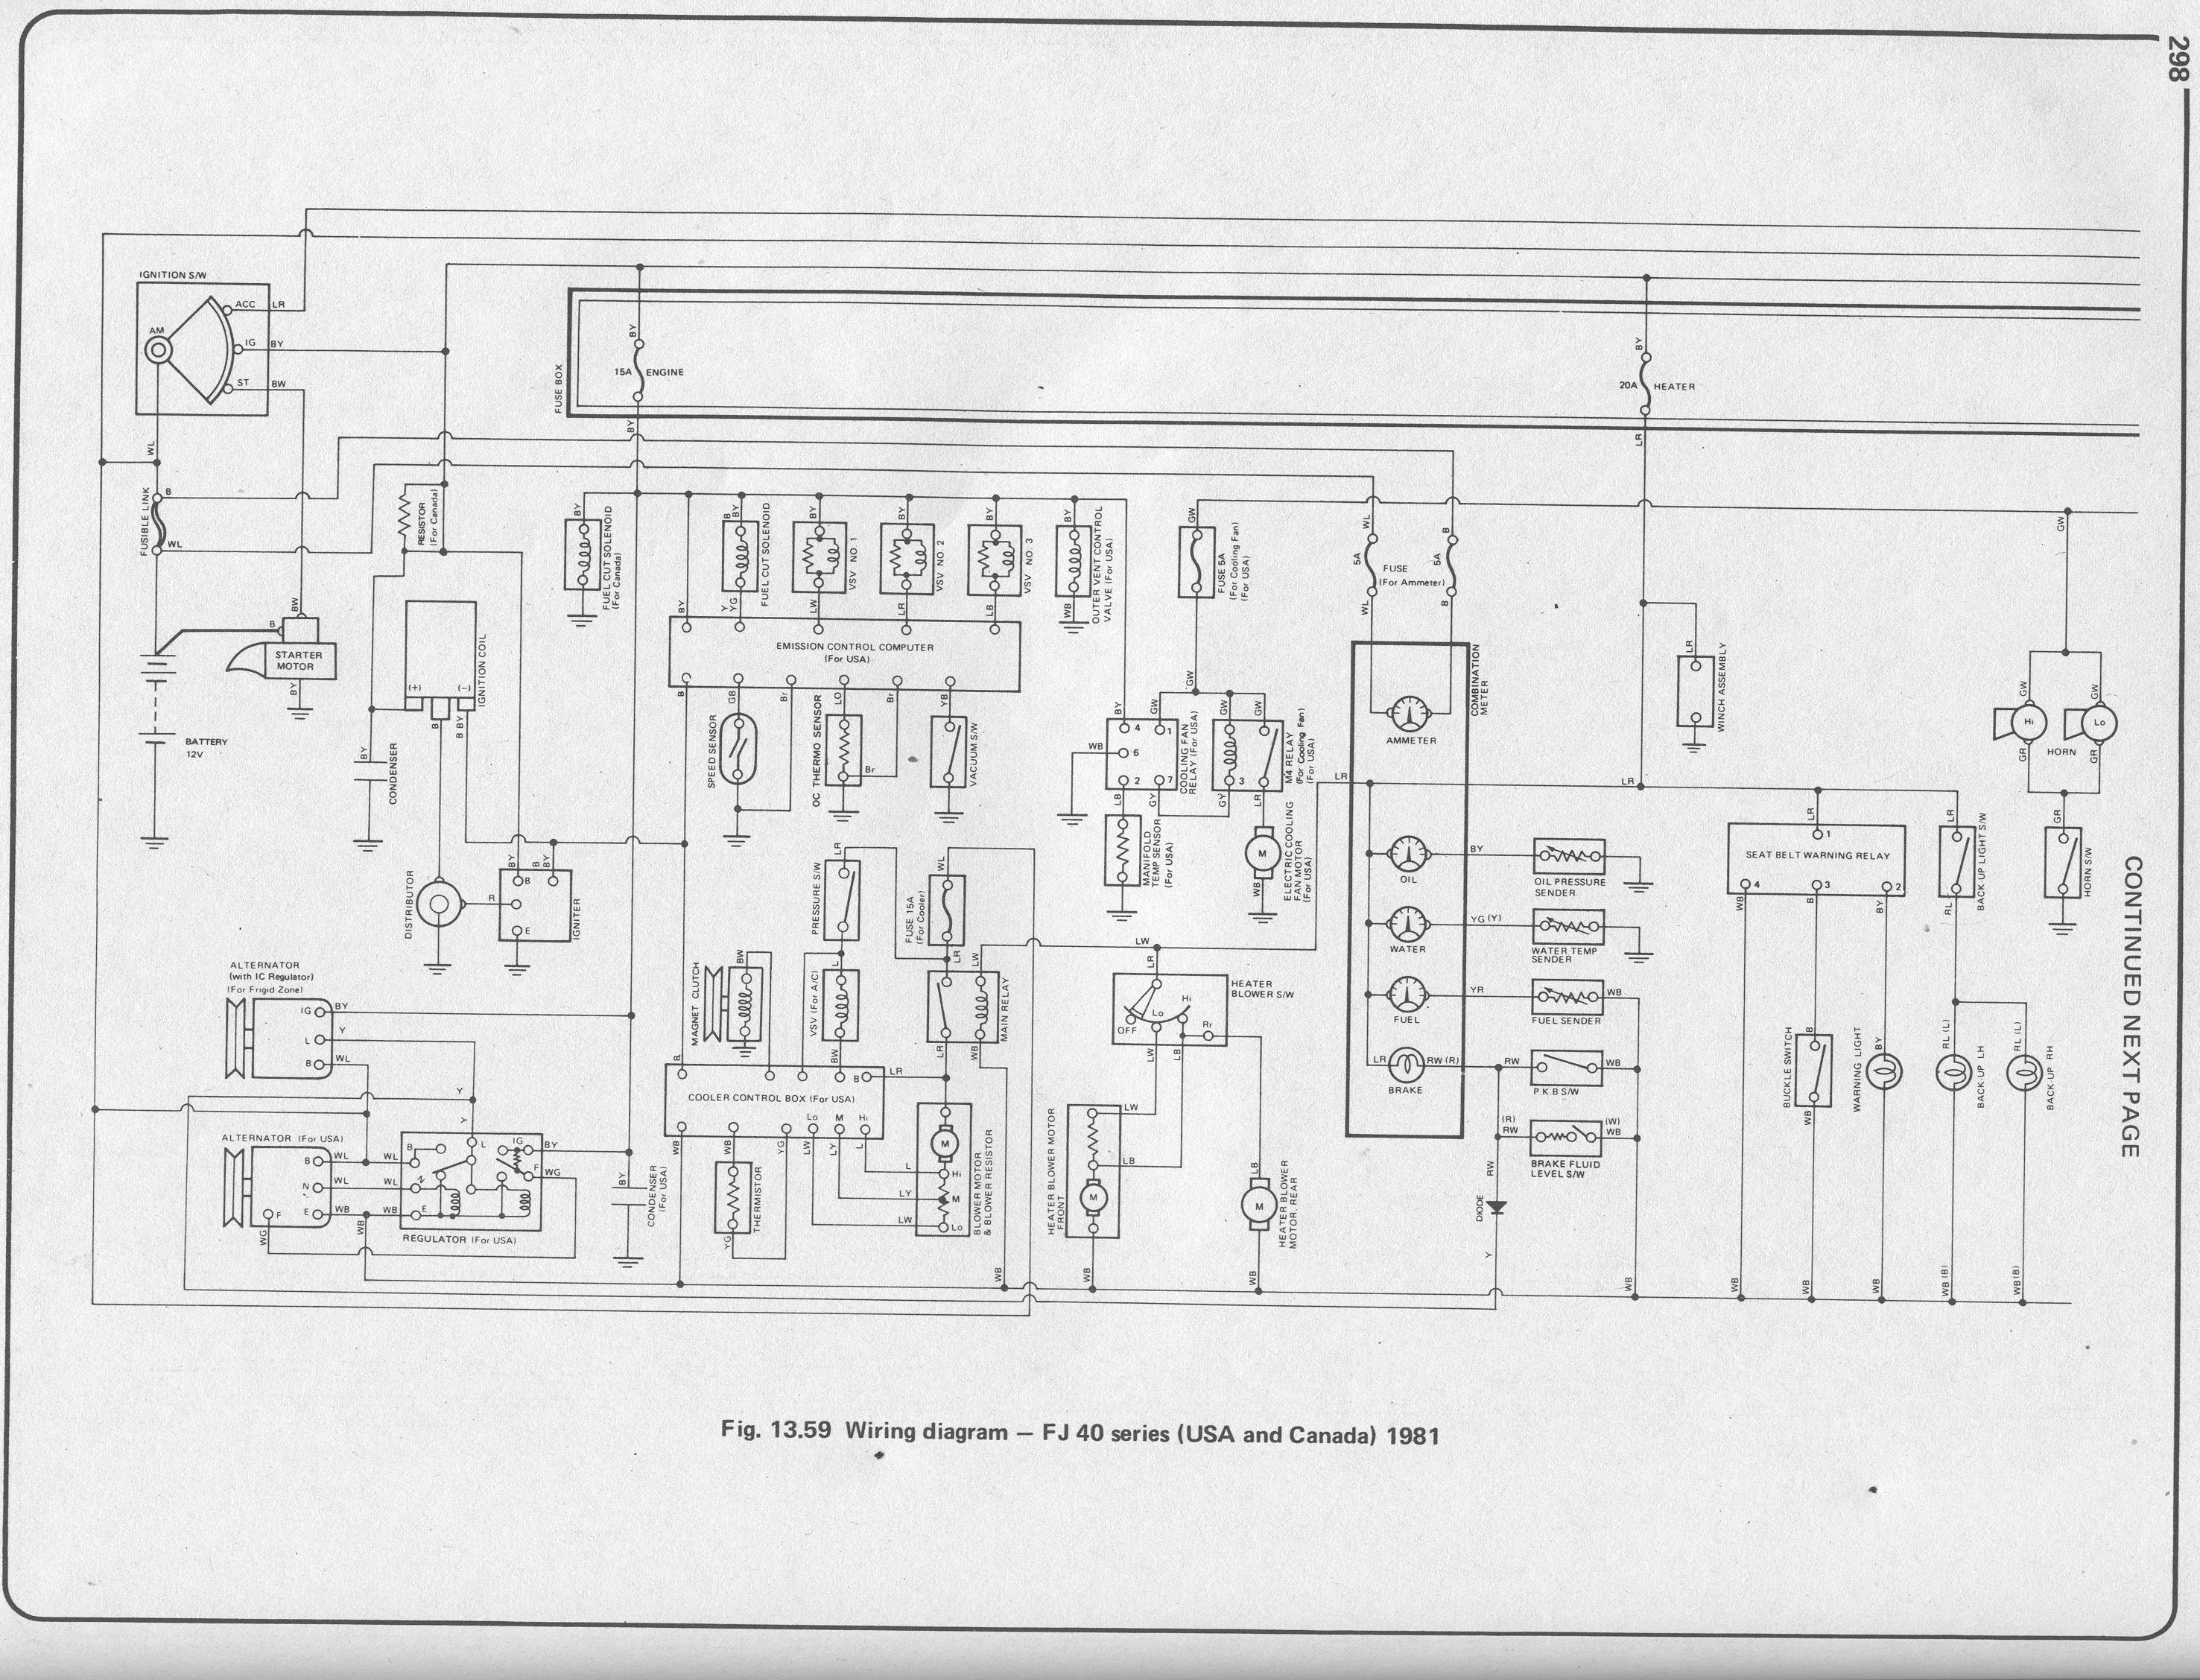 1985 Holiday Rambler Wiring Diagrams Schematic Schematics Signal Stat Diagram Stateofindianaco Yamaha Moto 4 Duo Therm Rv Thermostat